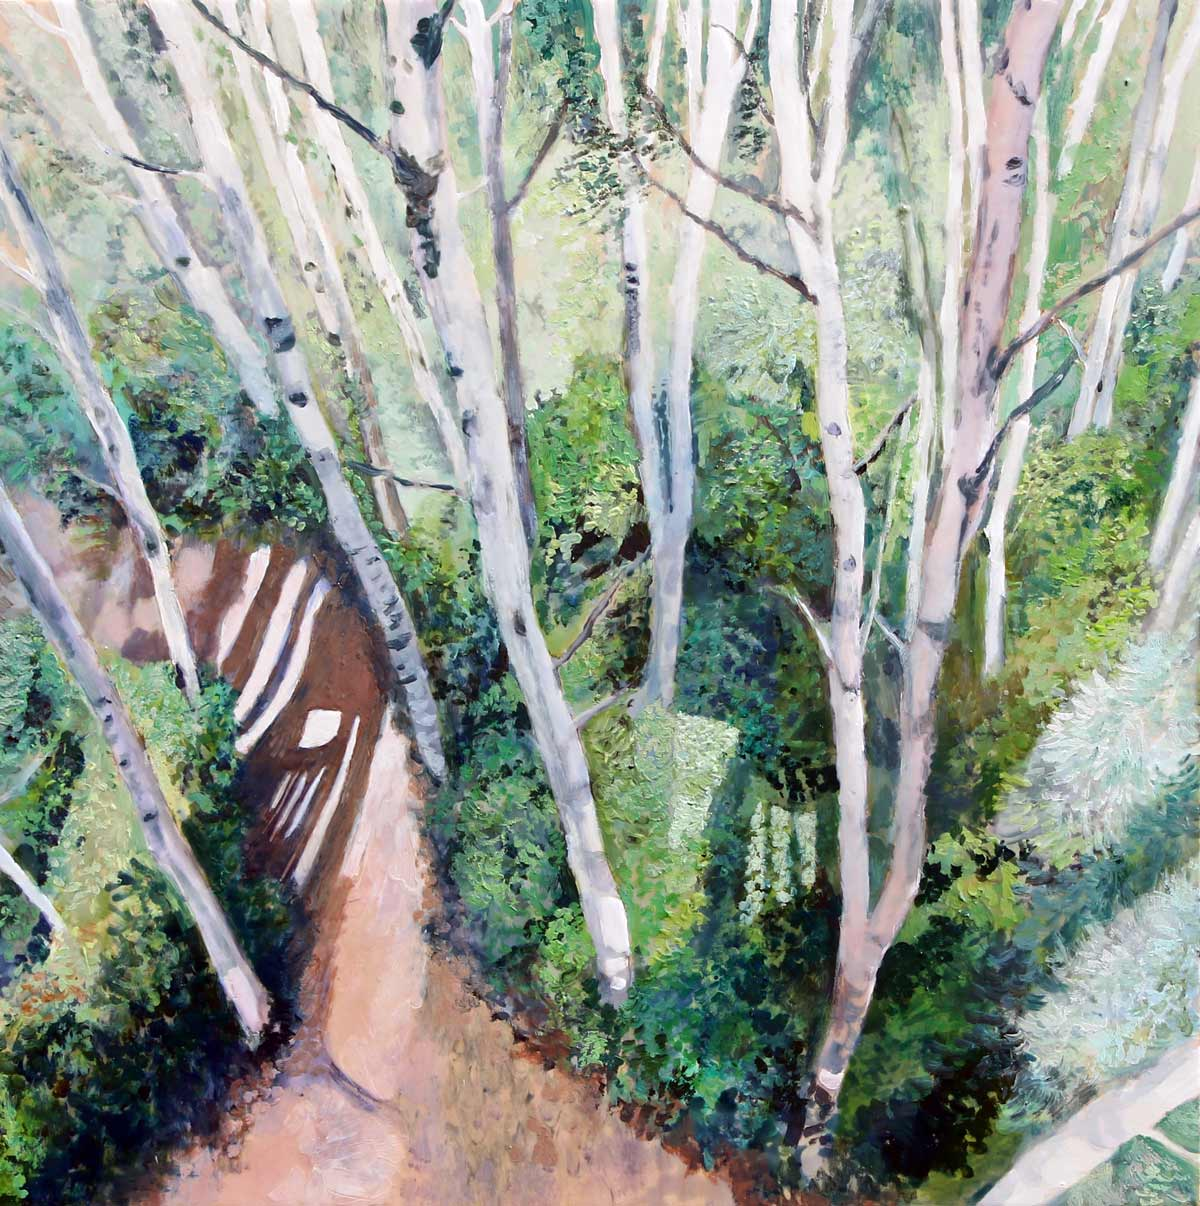 QSCP-Walk-in-the-forest-20-x-20-Acrylic-Panel-2016-web.jpg